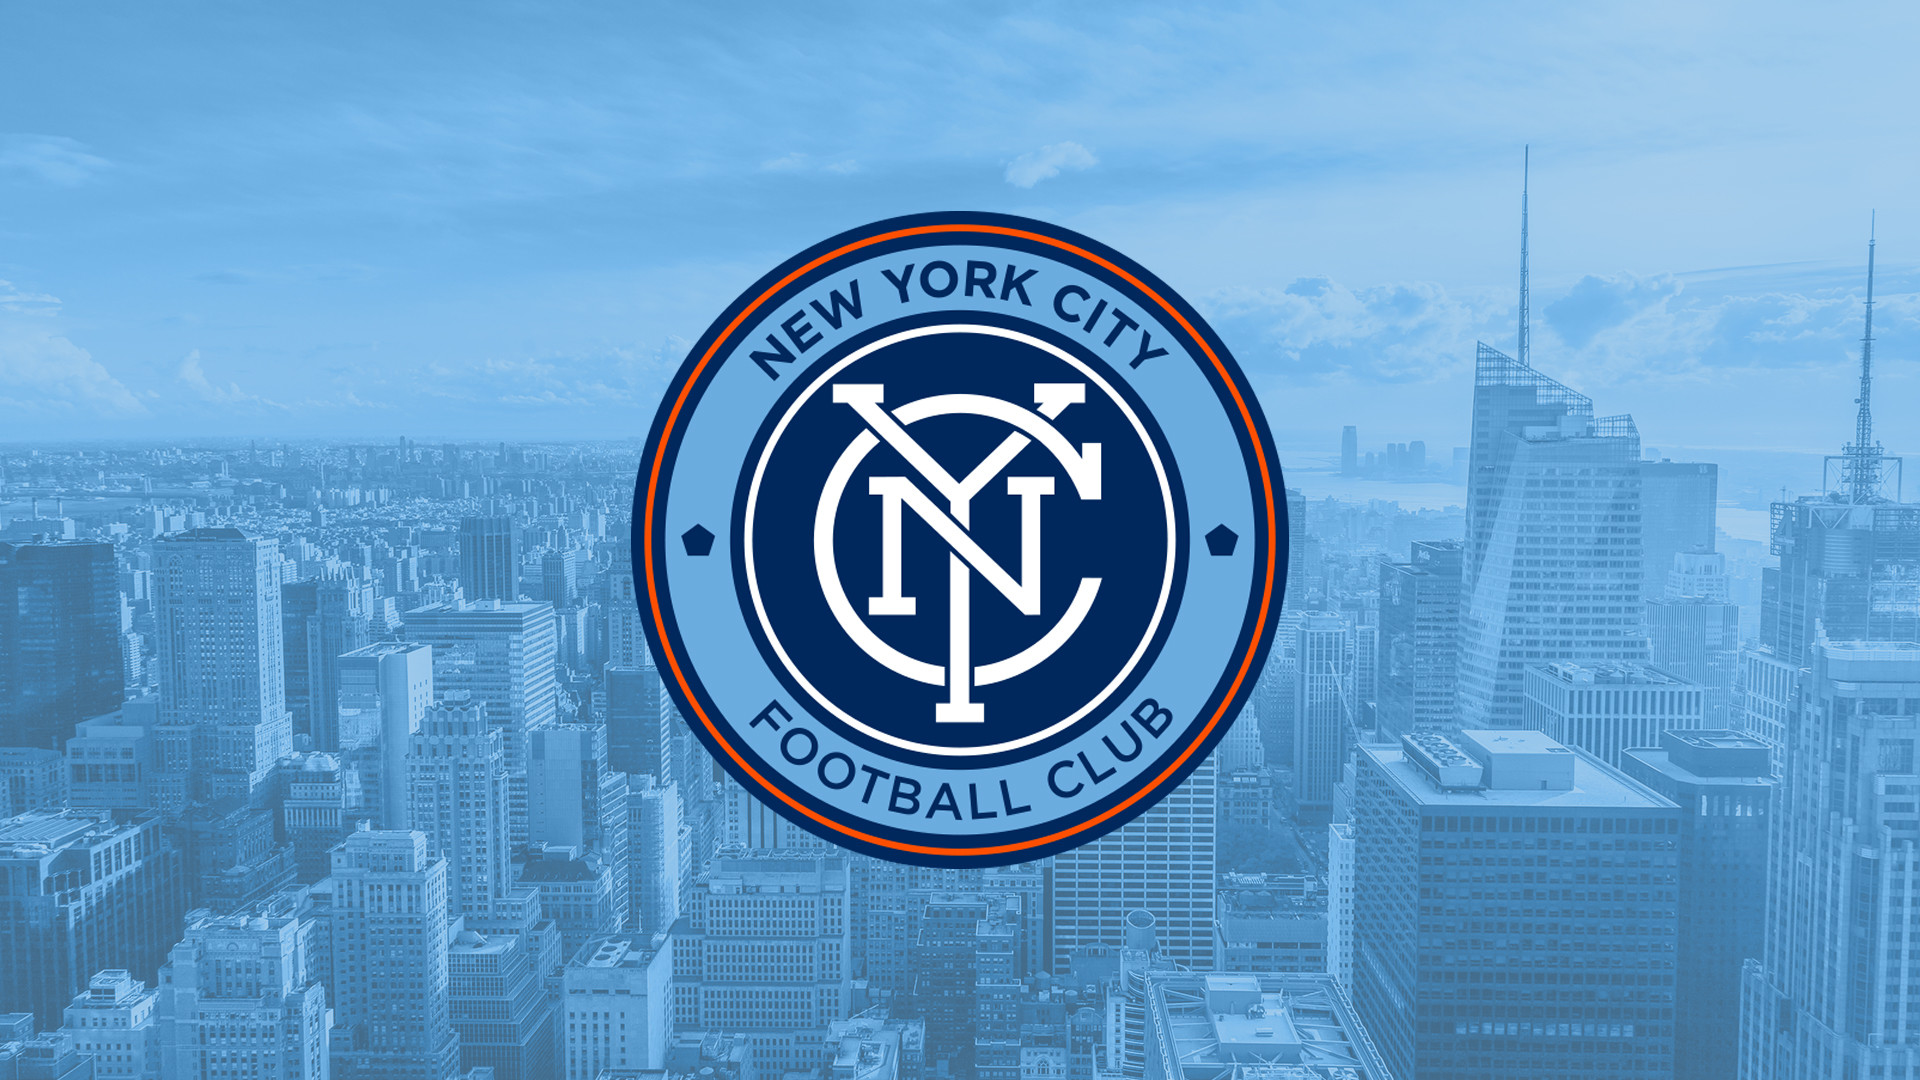 1920x1080 New York City FC Desktop Wallpaper